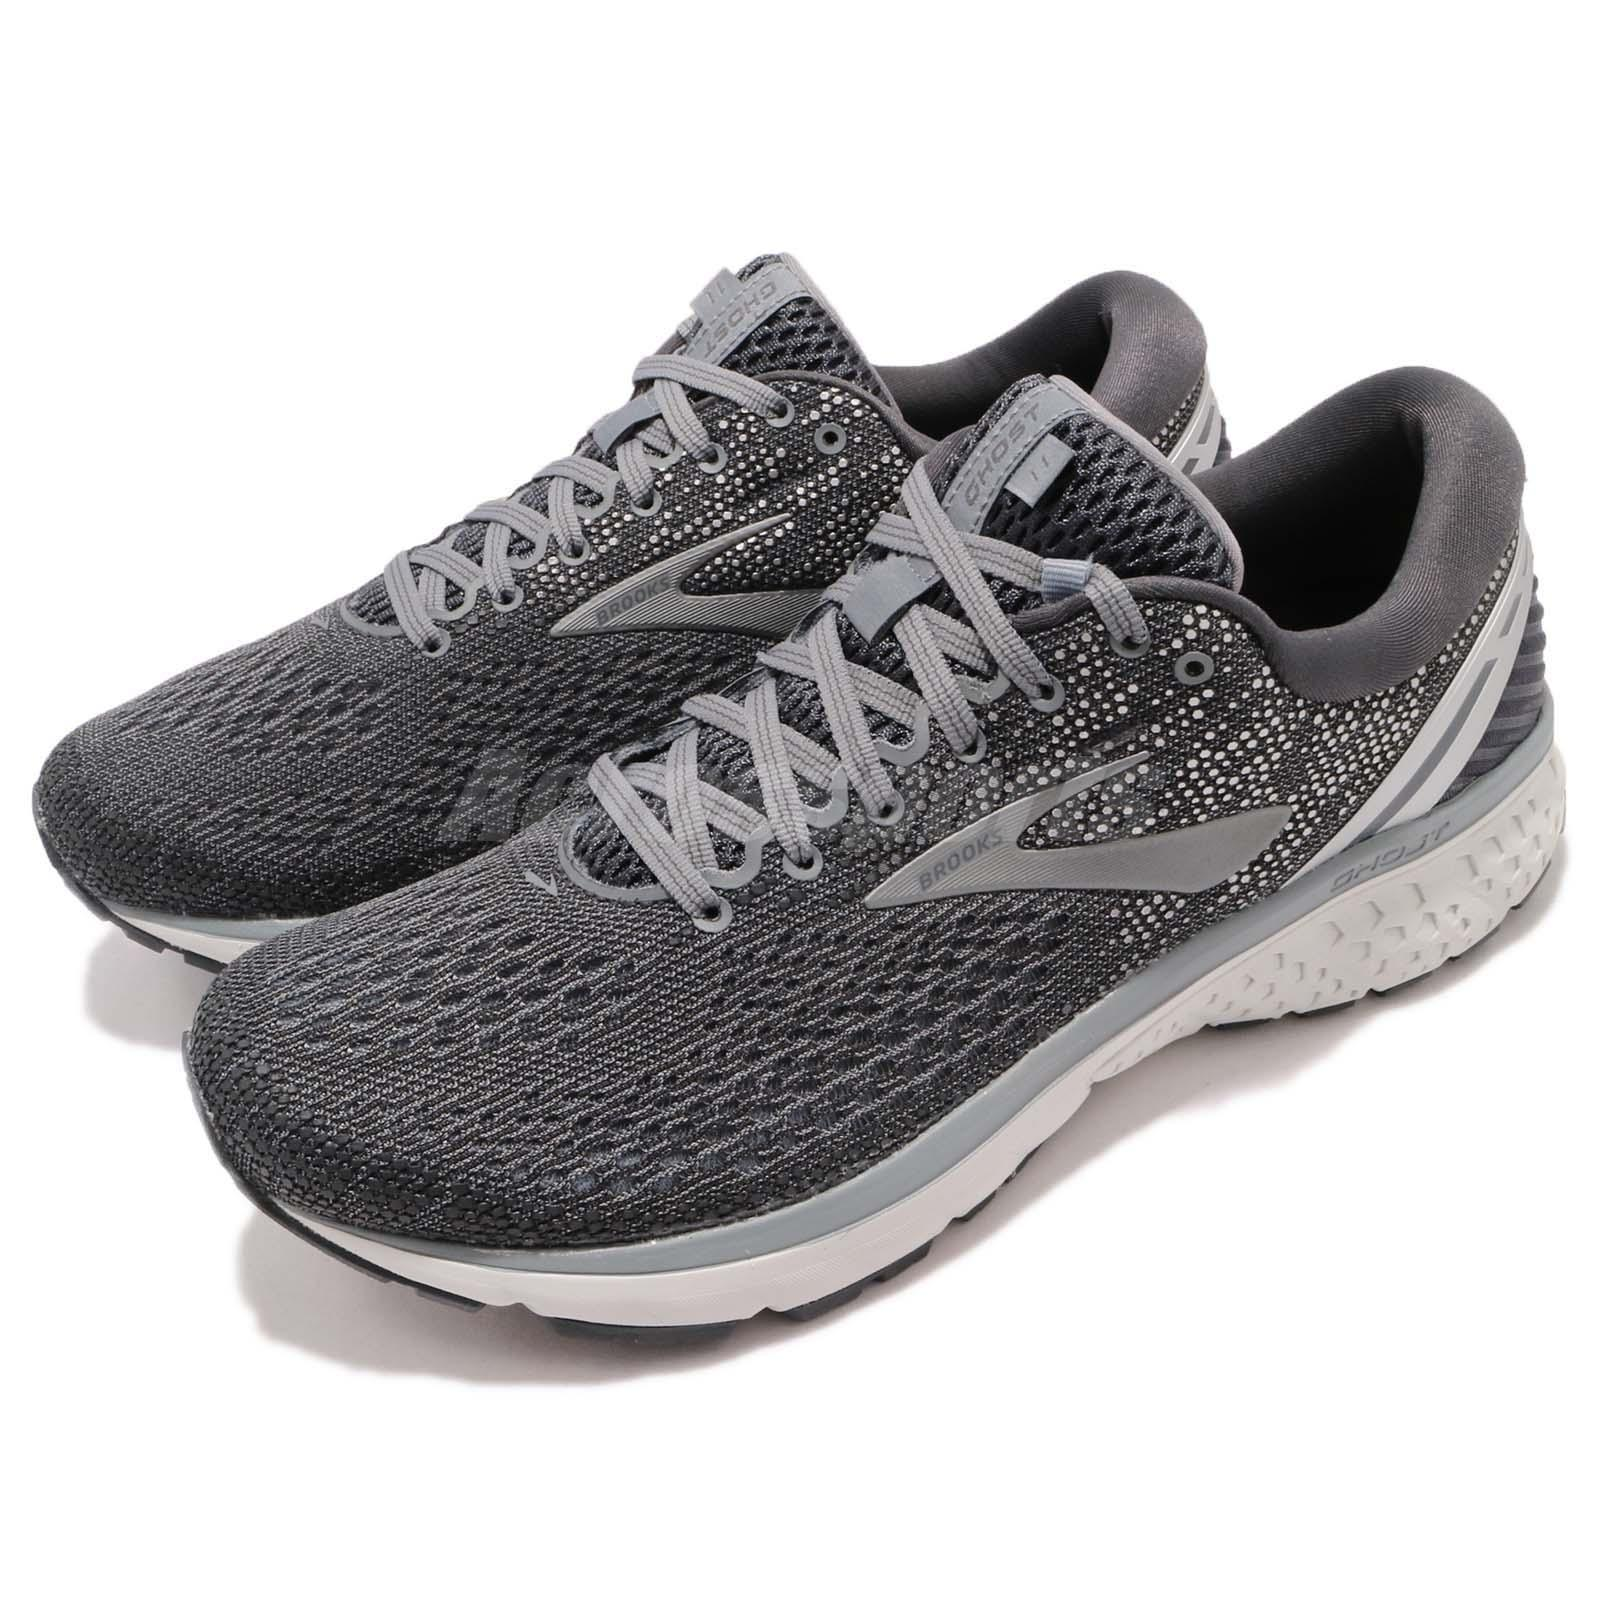 dcdfb6ce069 Details about Brooks Ghost 11 2E Wide Ebony Grey Silver Men Running Shoes  Sneakers 110288 2E